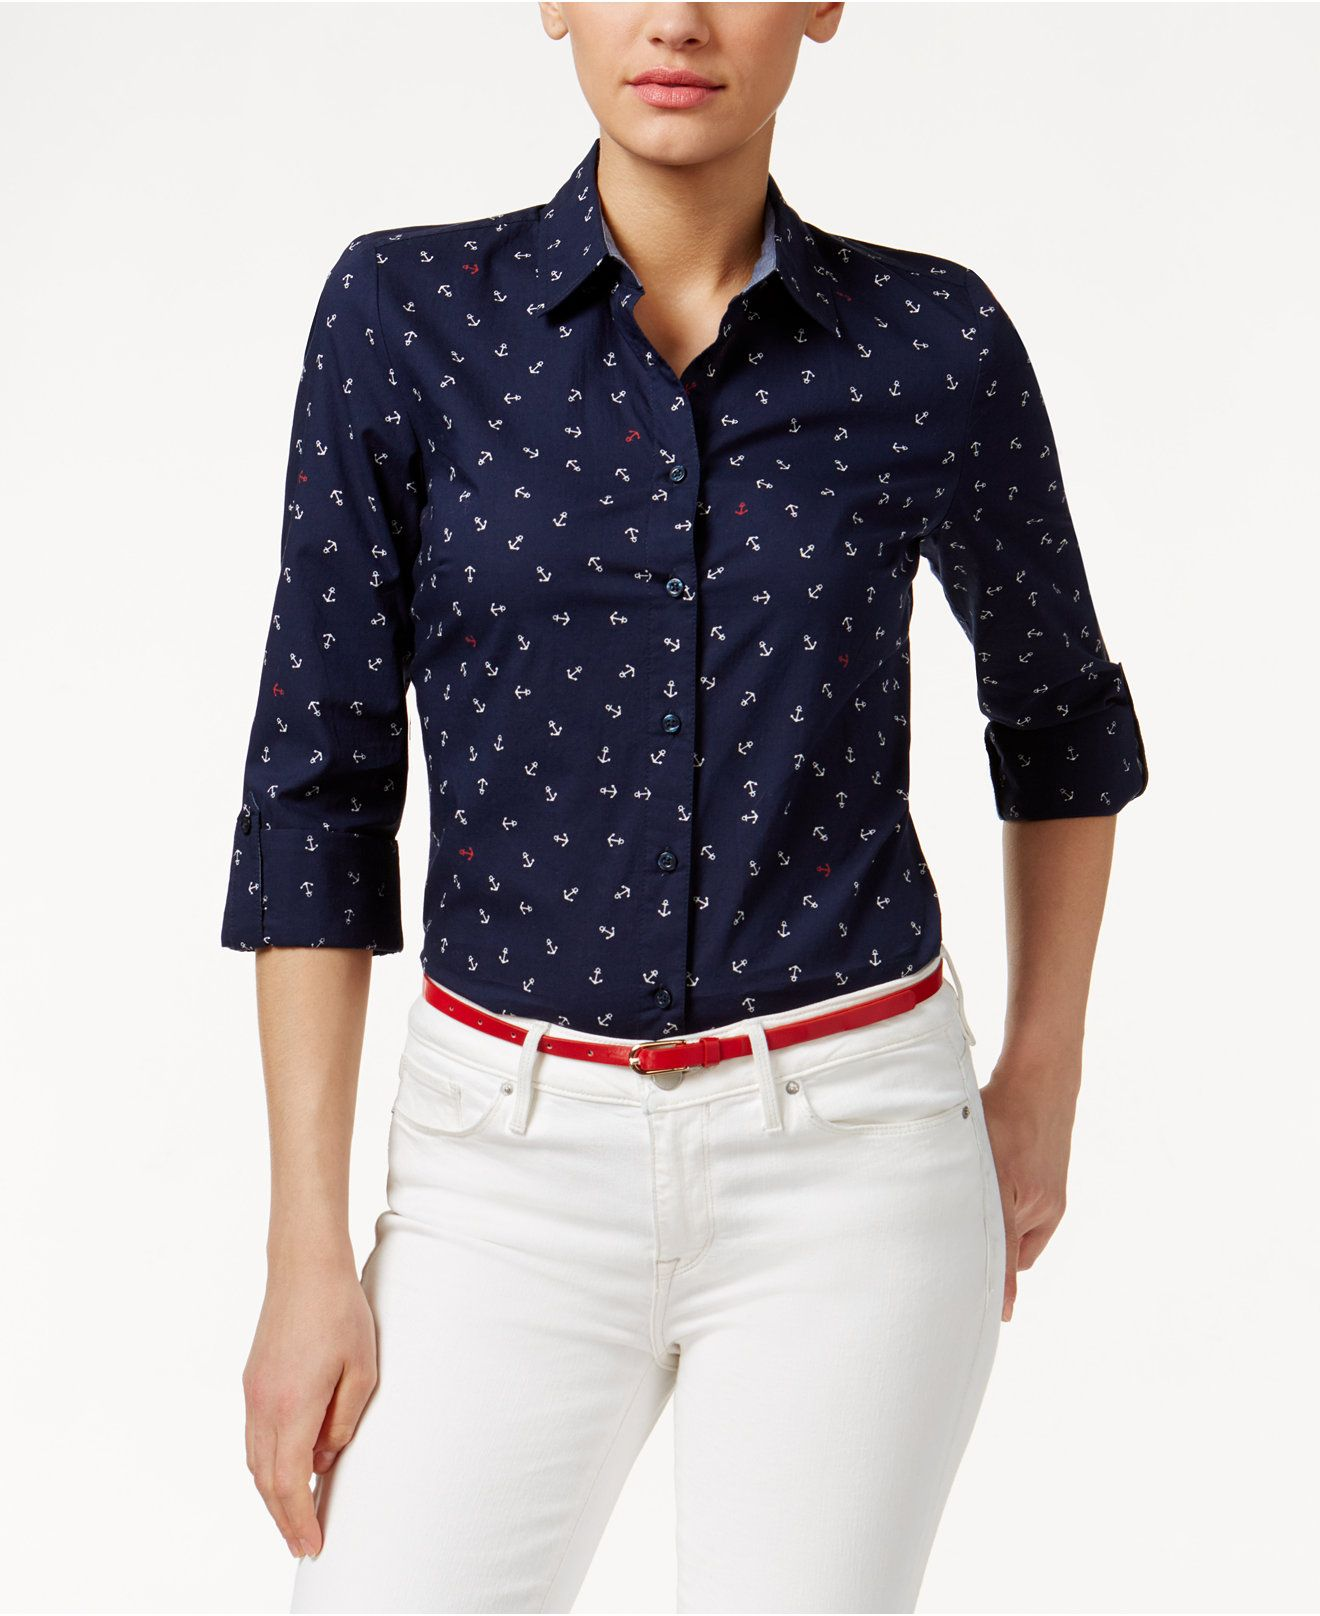 849a68406e3 Tommy Hilfiger Anchor-Print Shirt - Tops - Women - Macy s